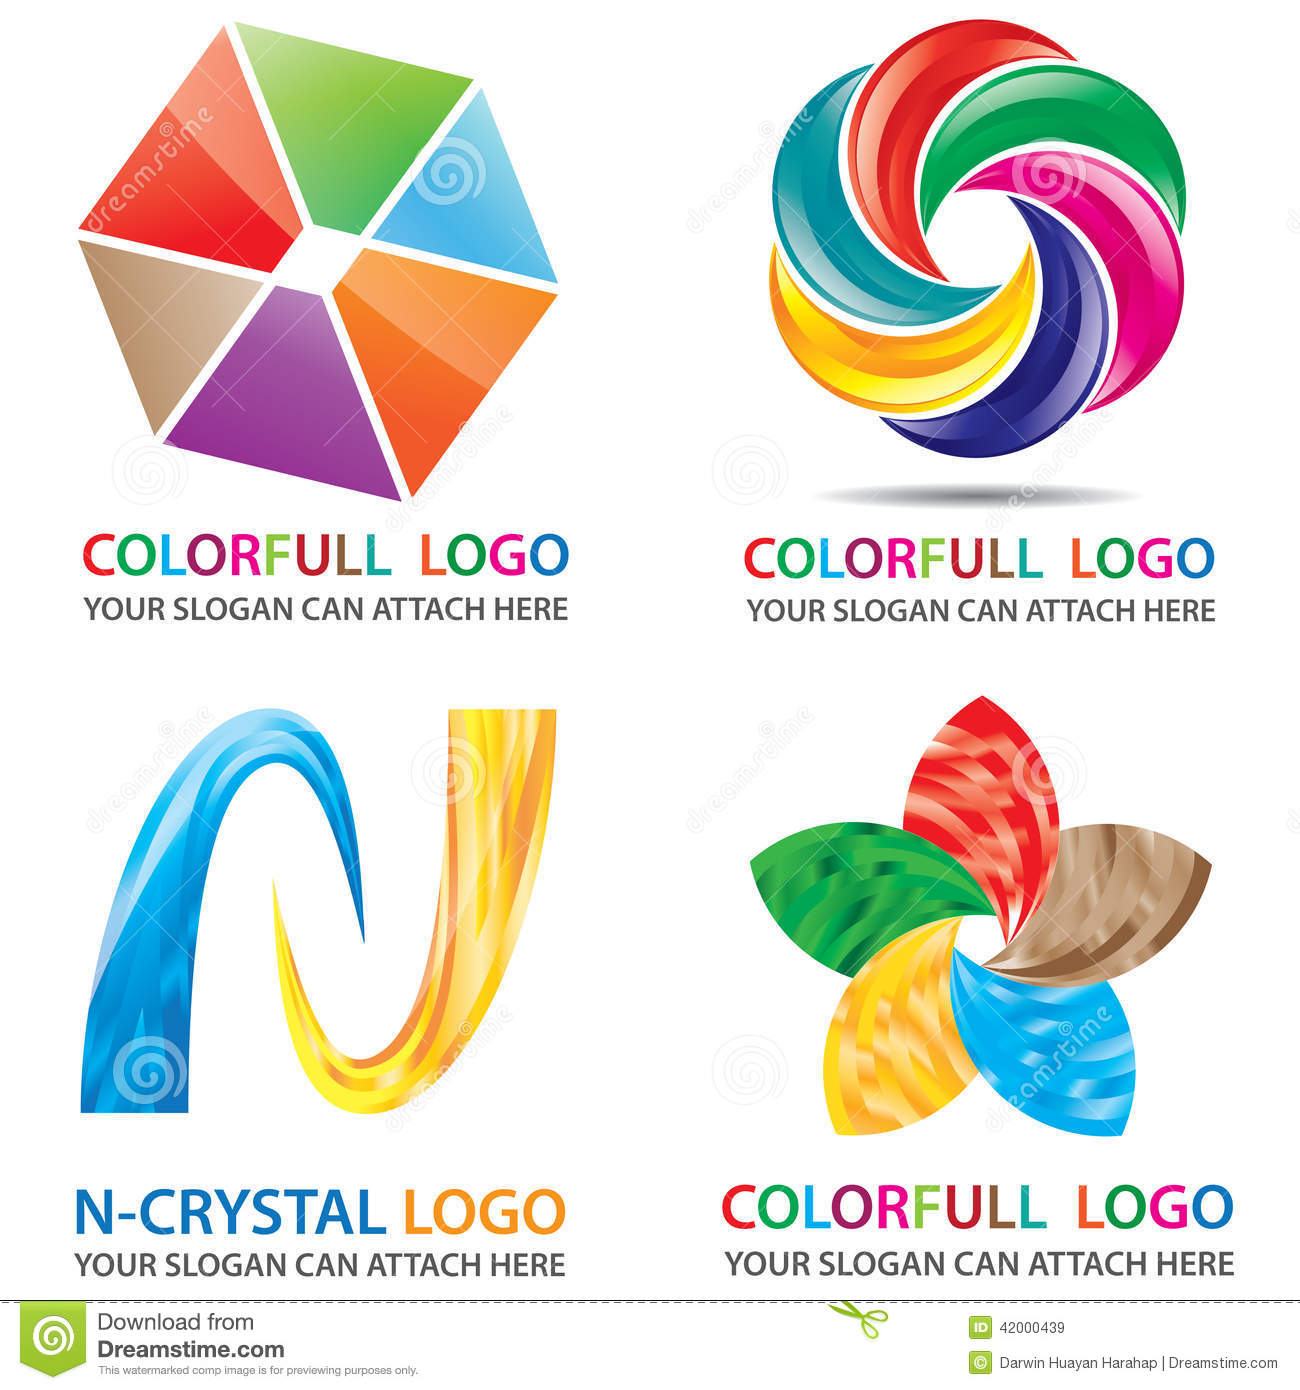 Colorfull 3D Look Logo Template